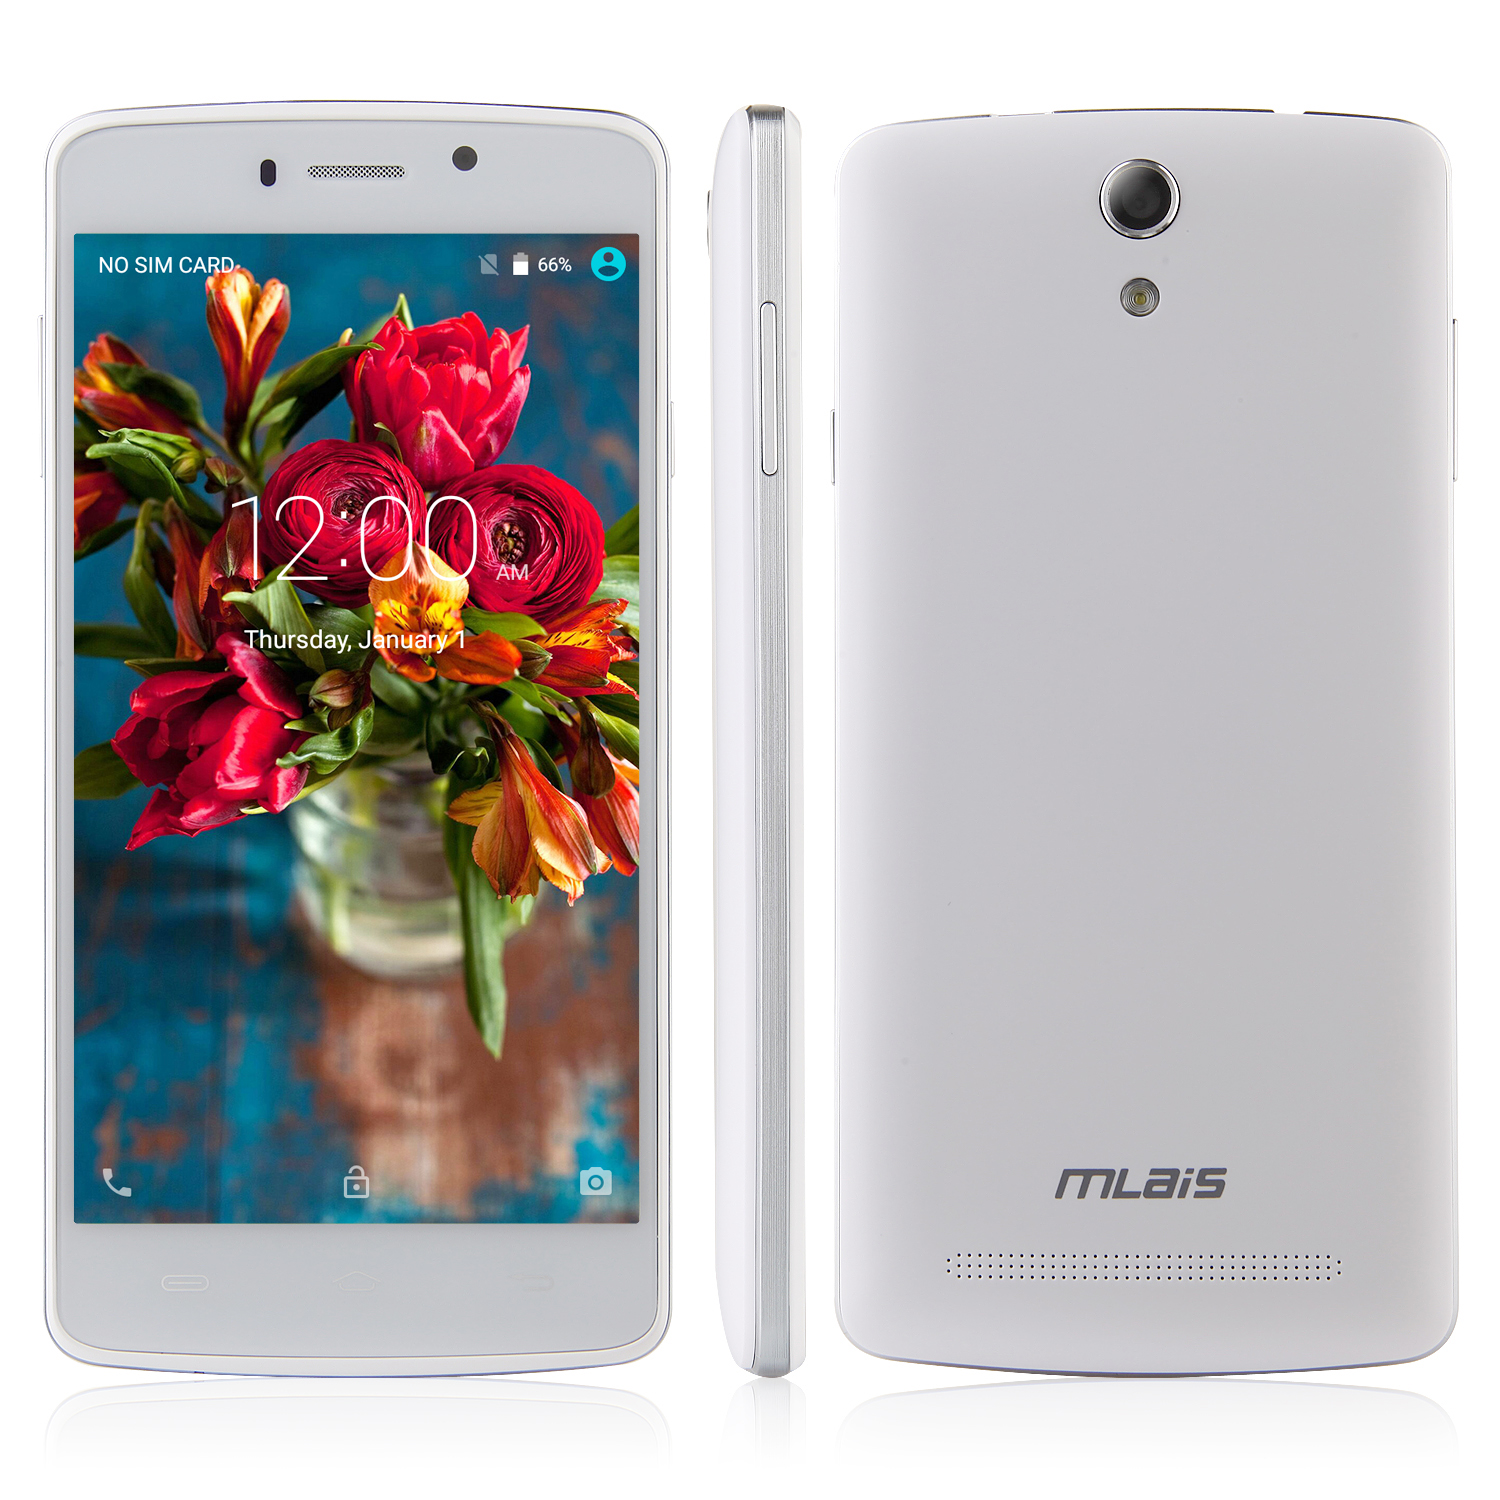 Mlais MX Base Smartphone 5.0 Inch HD 64bit MTK6735 Android 5.1 2GB 16GB 4300mAh White